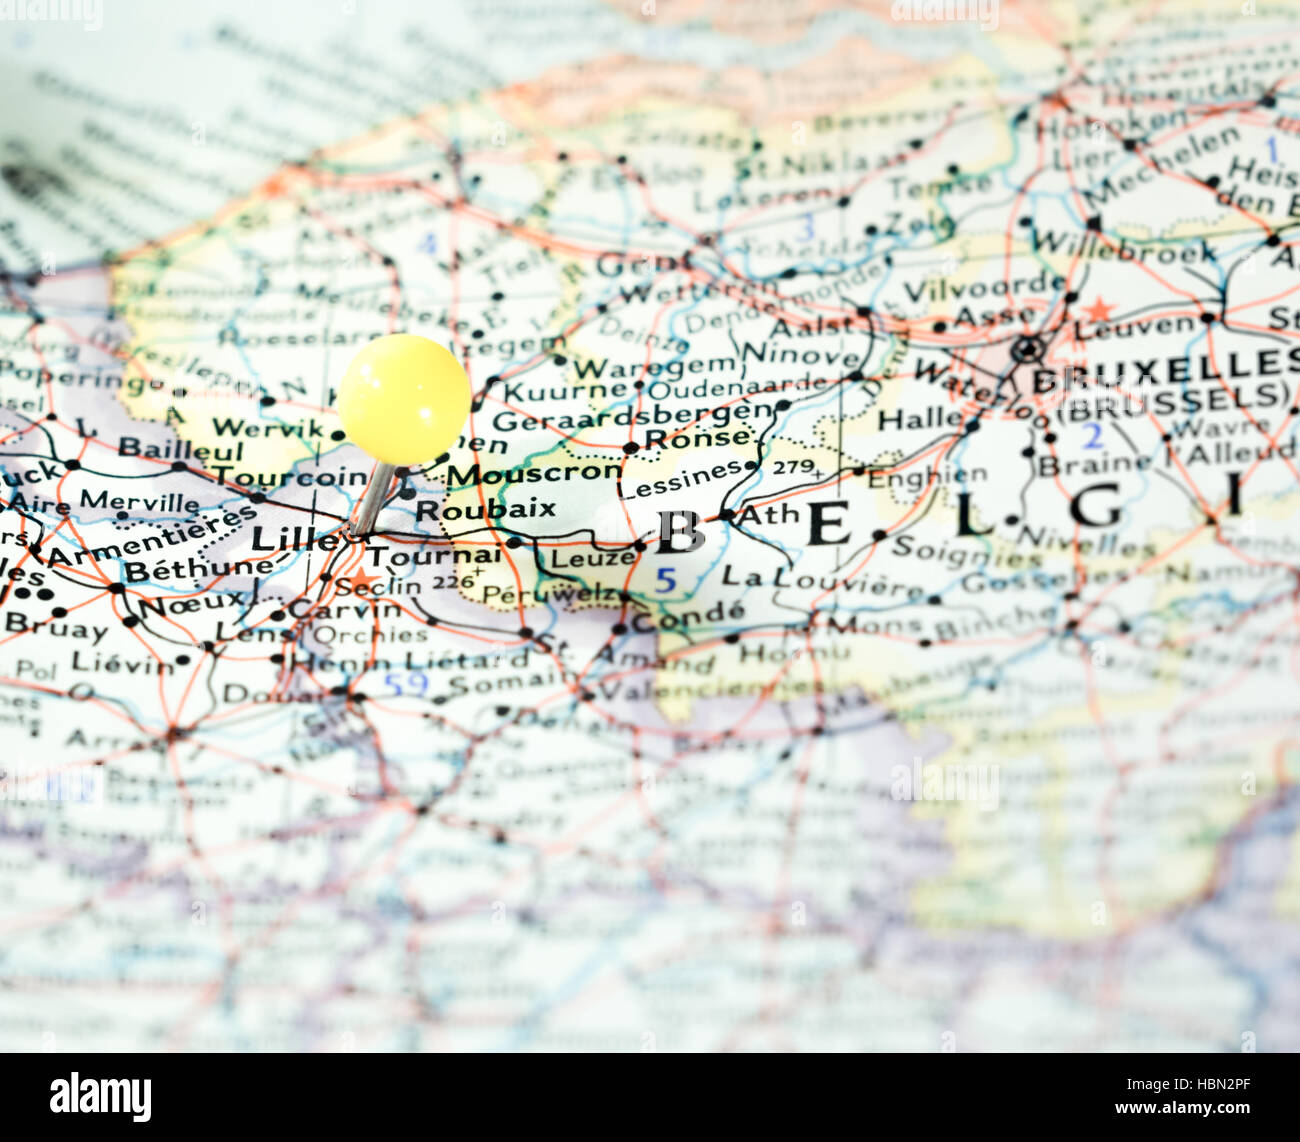 Lille France location pinned on the route map Stock Photo Royalty